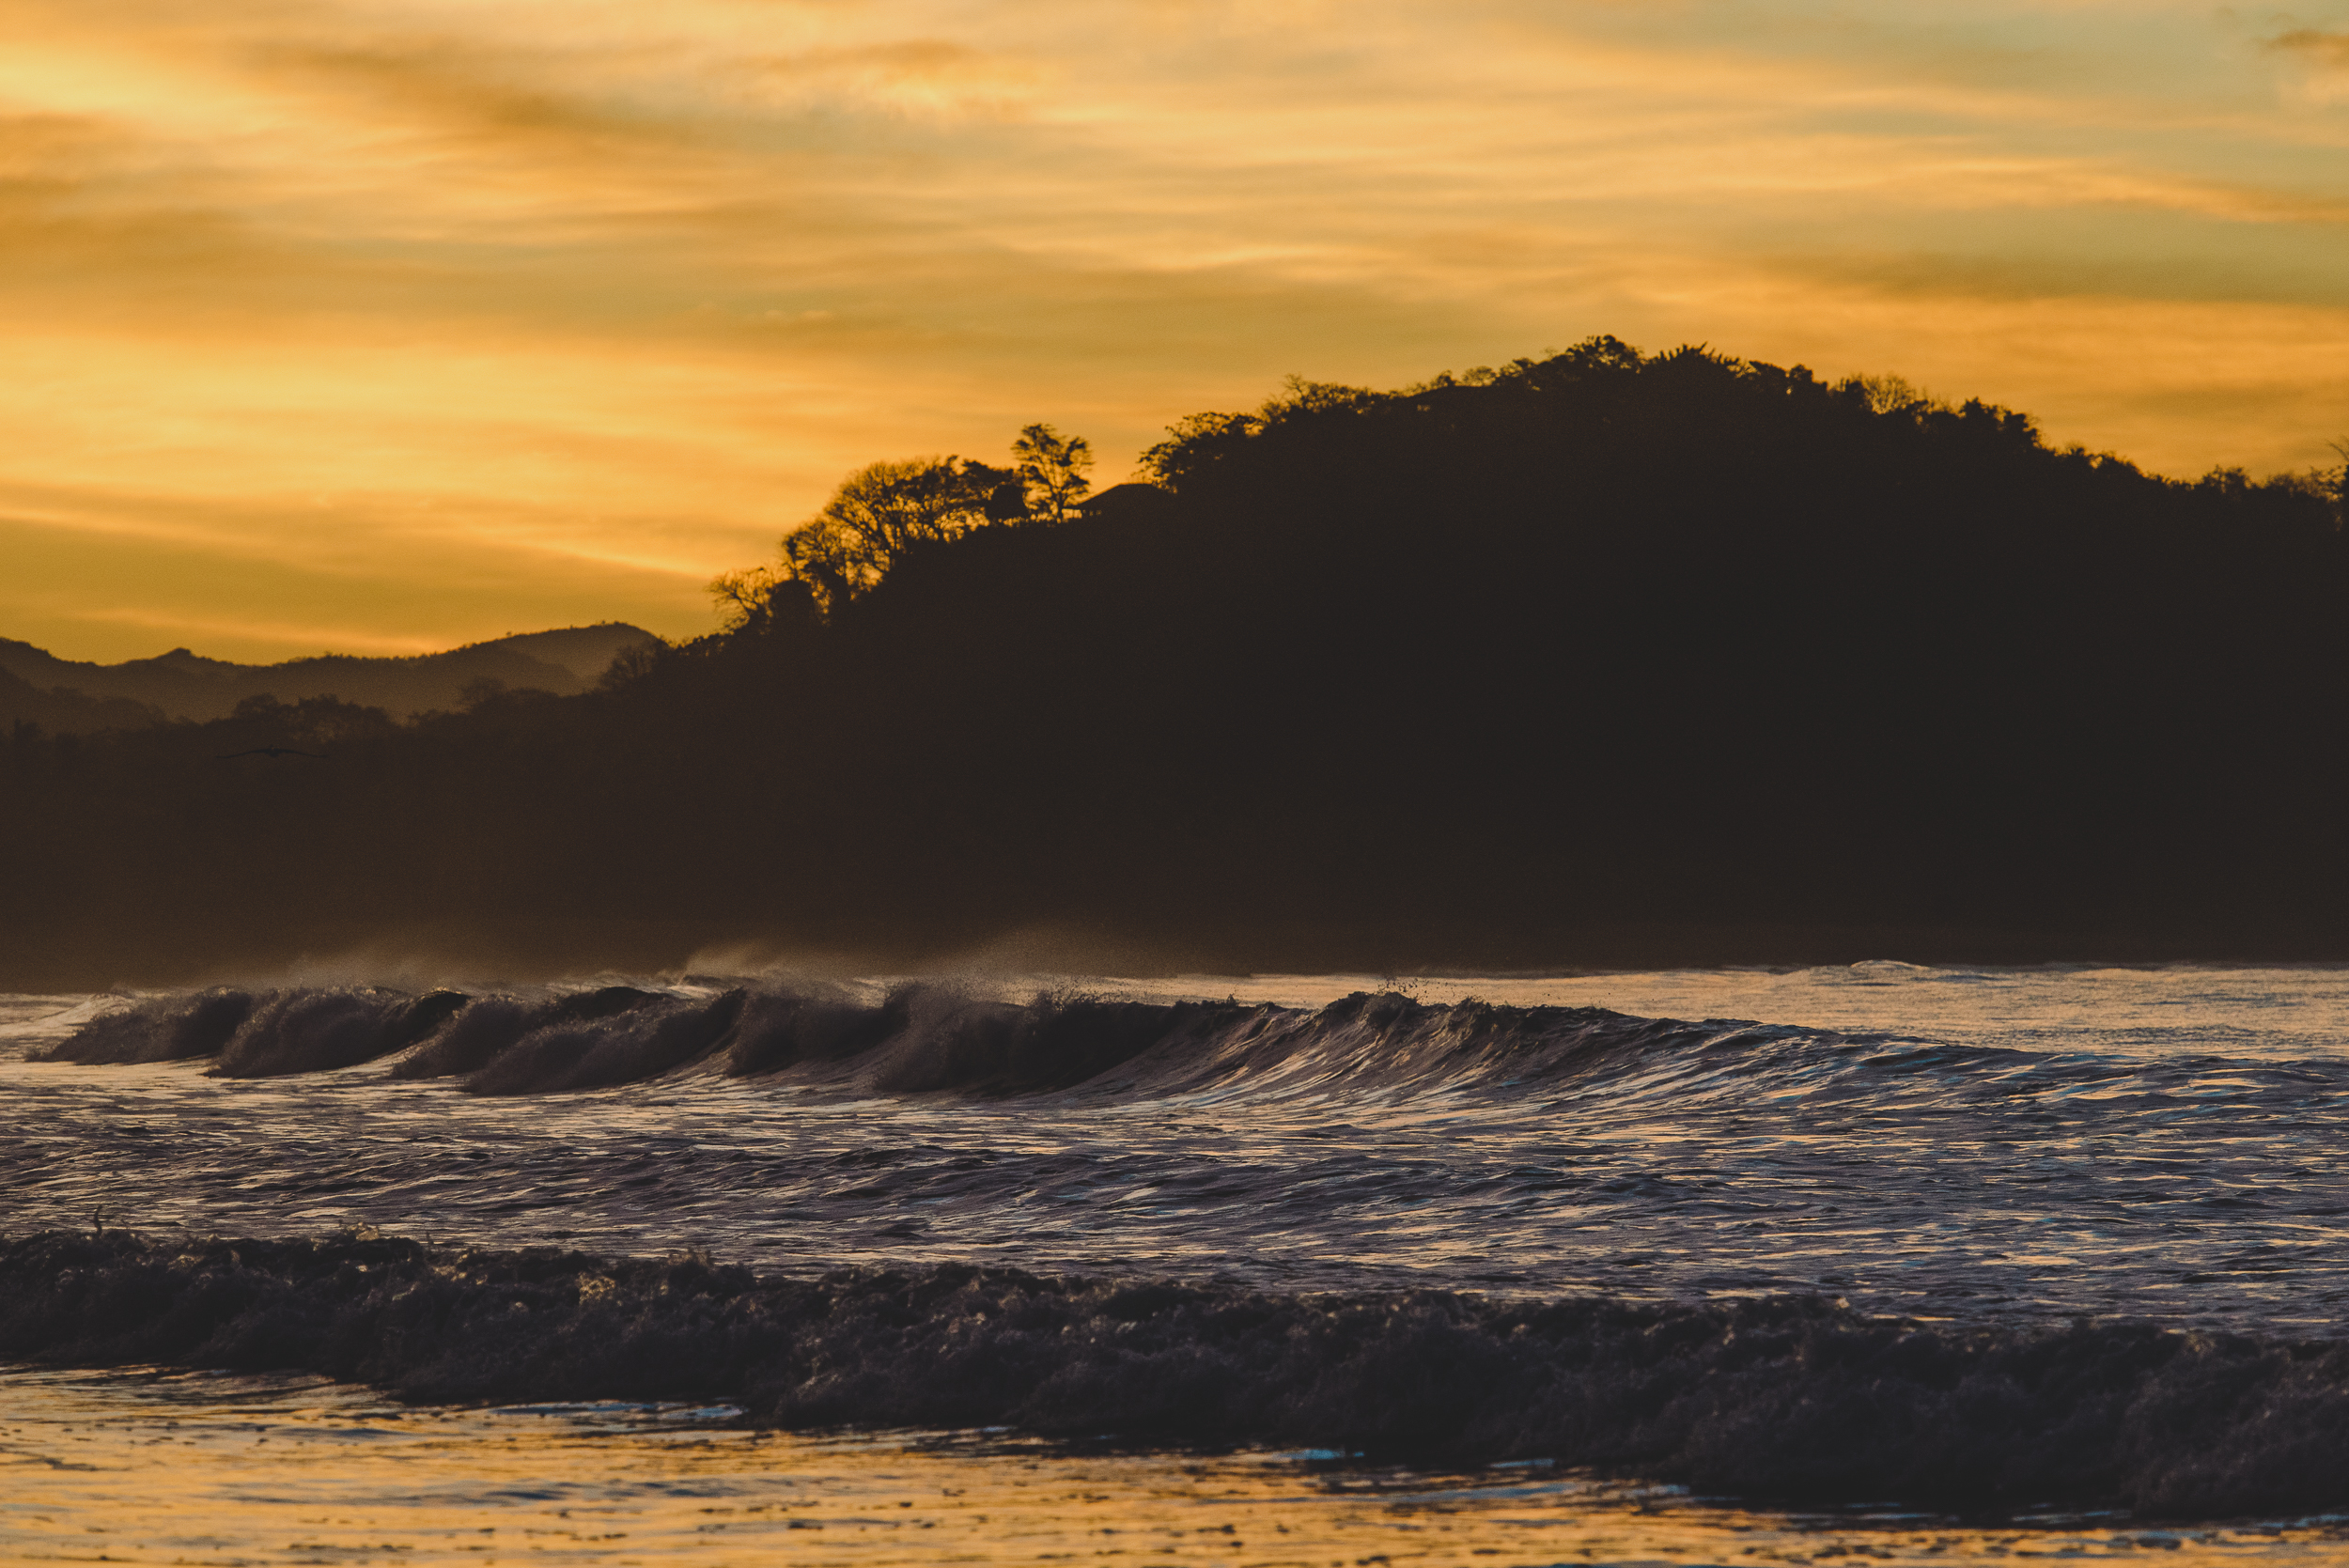 Costa Rican Waves at Sunrise